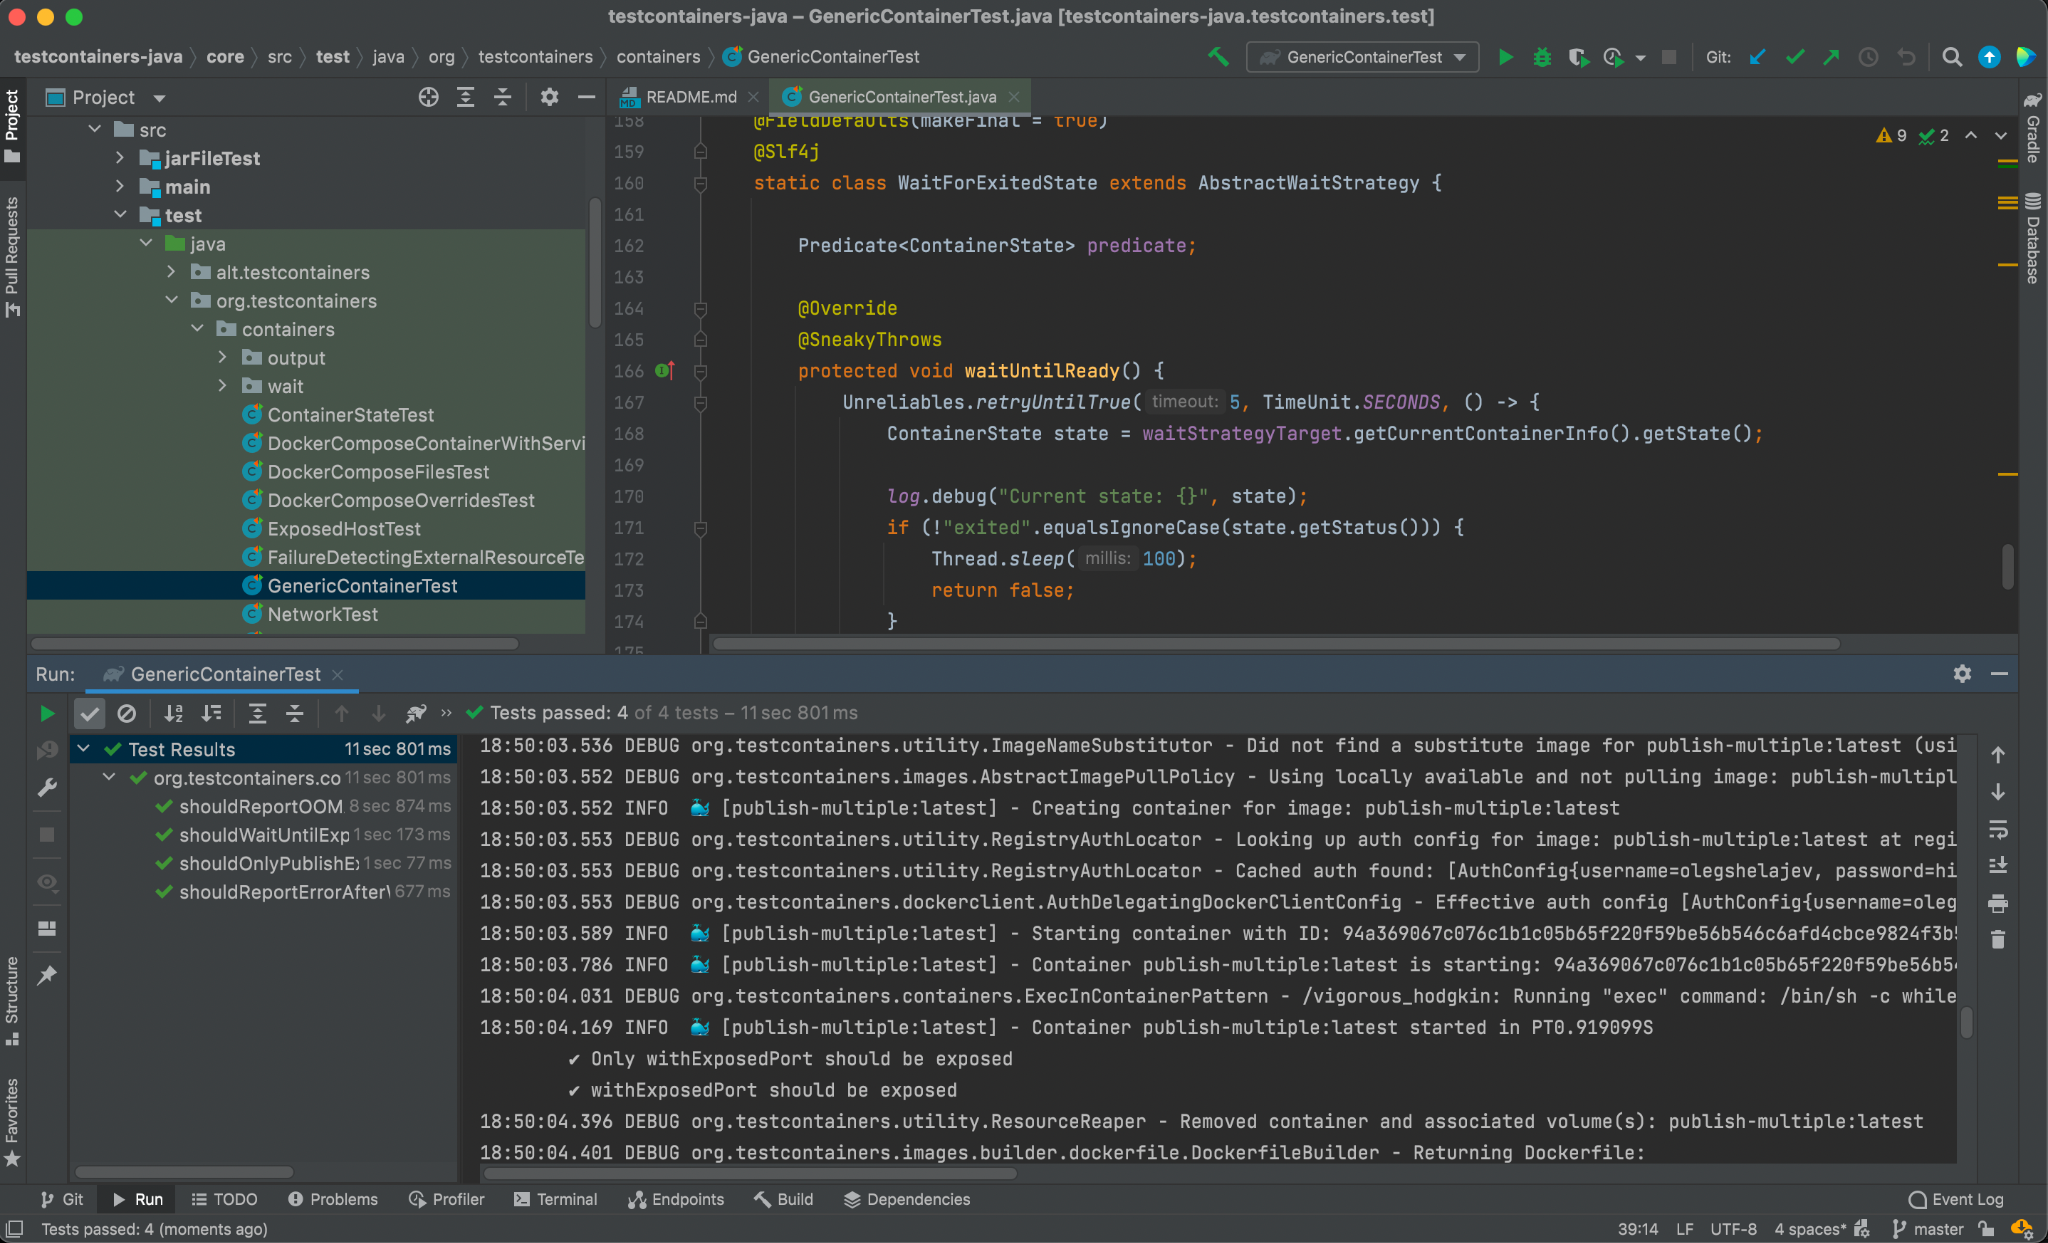 Integration tests from the Testcontainers-java suite are passing with Docker Desktop